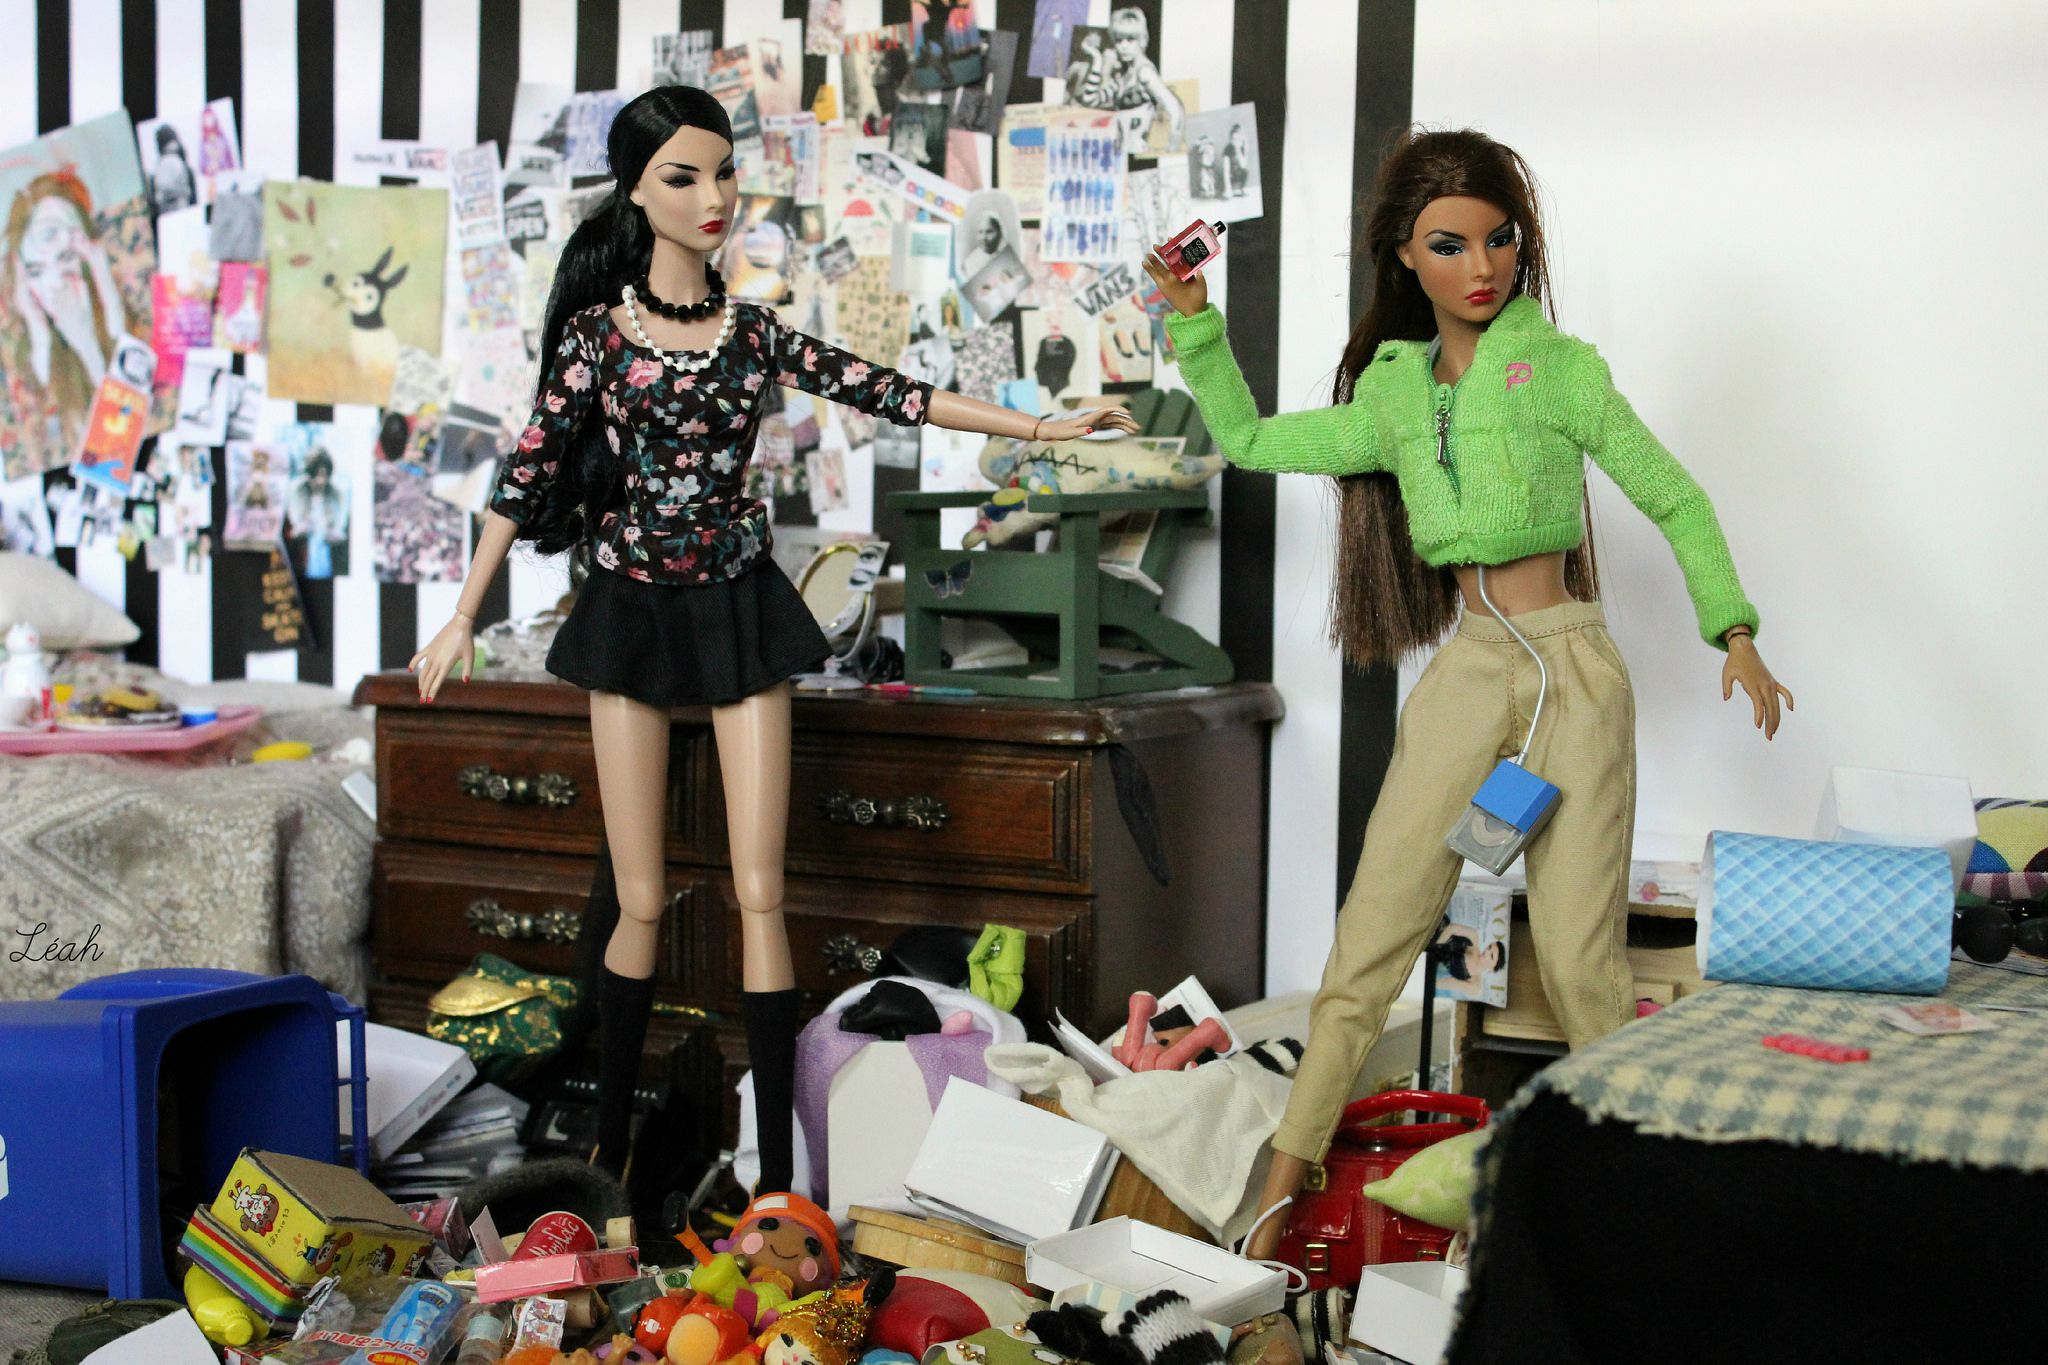 """https://flic.kr/p/nLViyr 